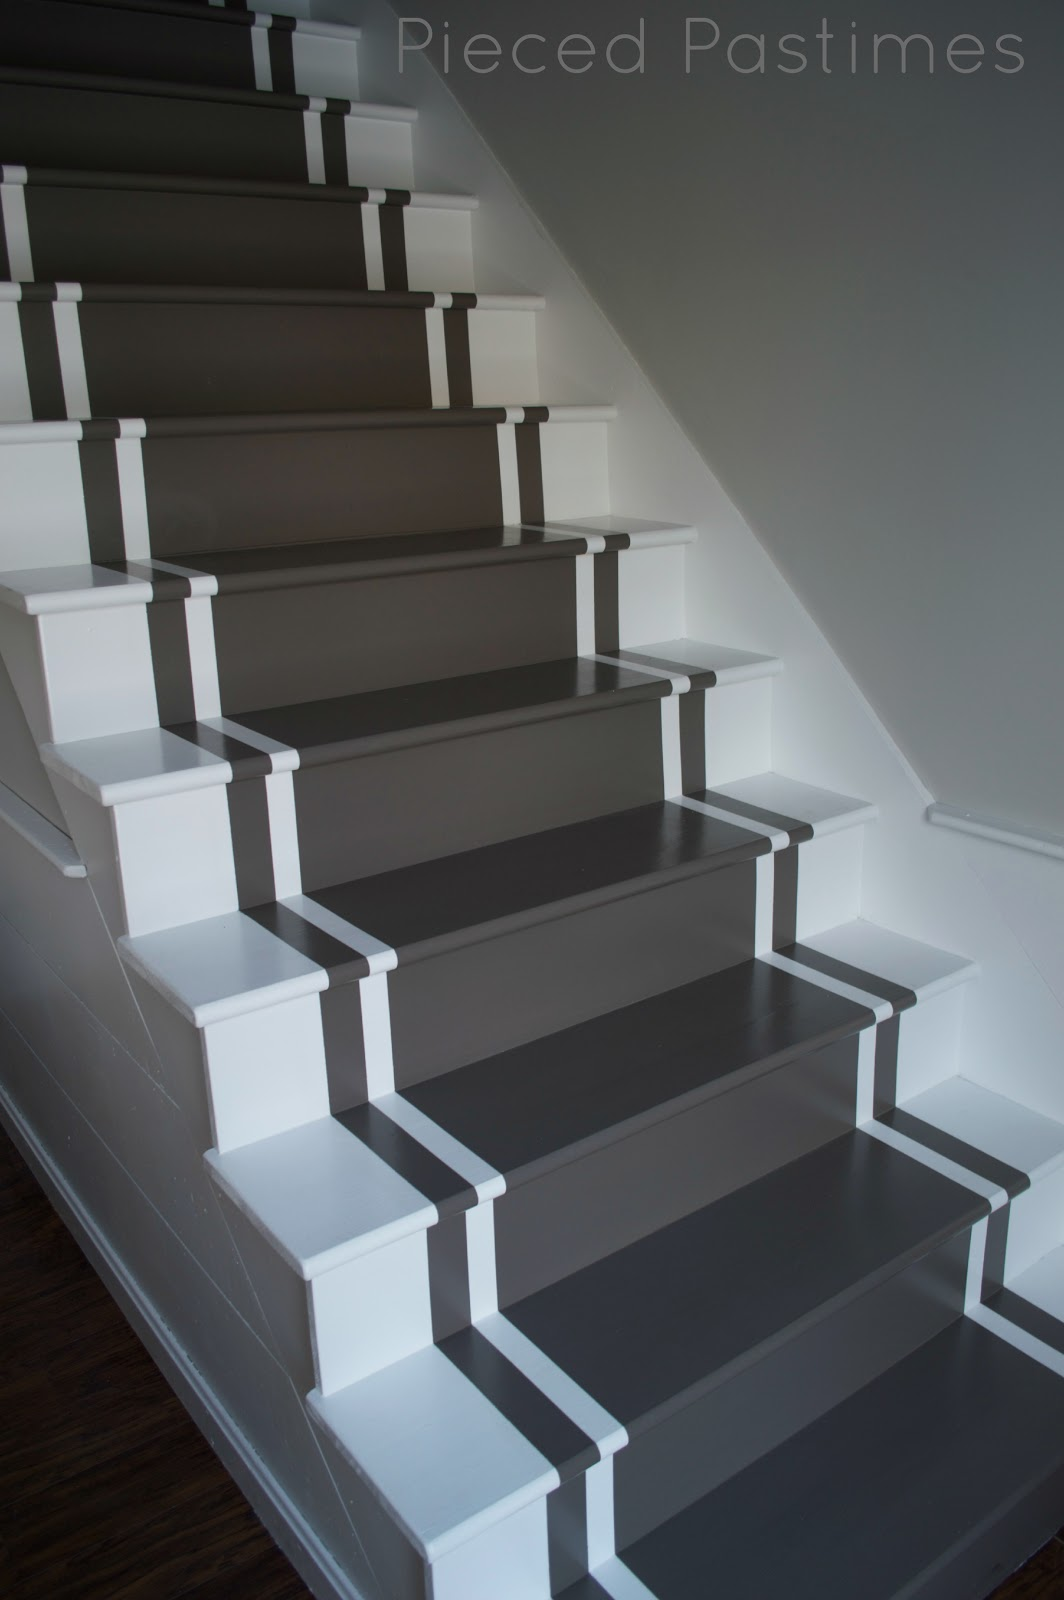 Pieced pastimes diy painted stair runner - Painted stairs ideas pictures ...